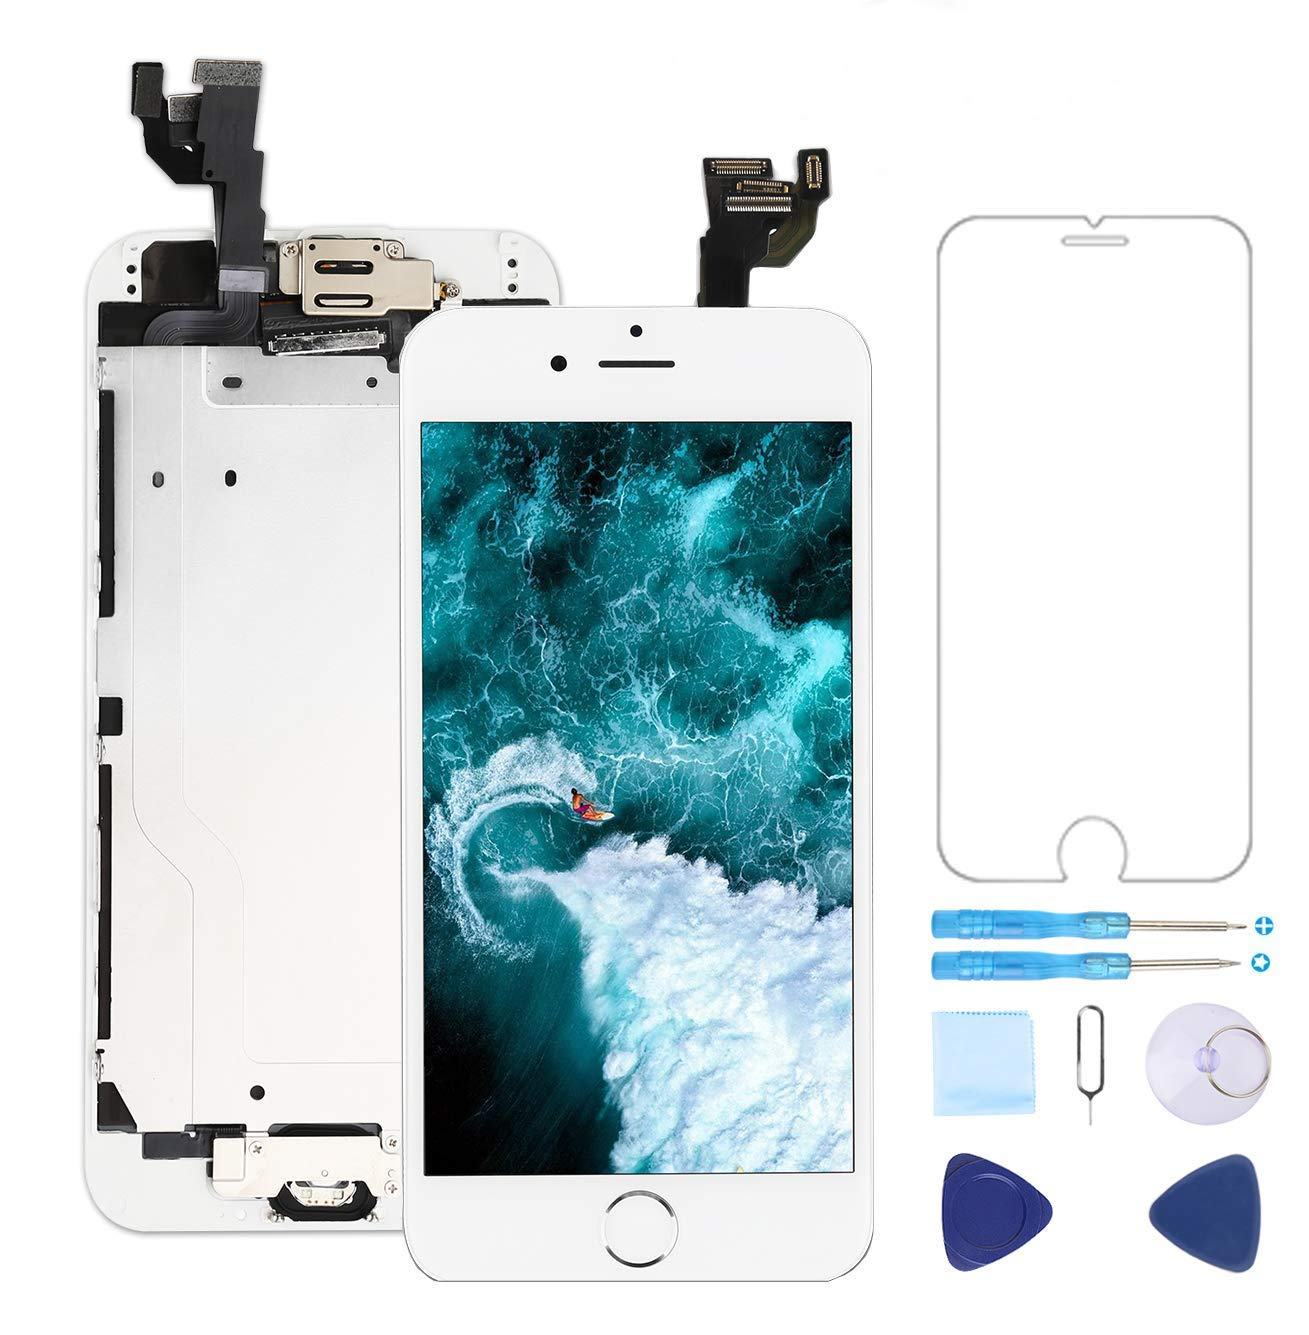 Screen Replacement for iPhone 6 Plus White 5.5'' LCD Display Touch Digitizer Frame Assembly Full Repair Kit,with Home Button,Proximity Sensor,Ear Speaker,Front Camera,Screen Protector,Repair Tools by Topscreen